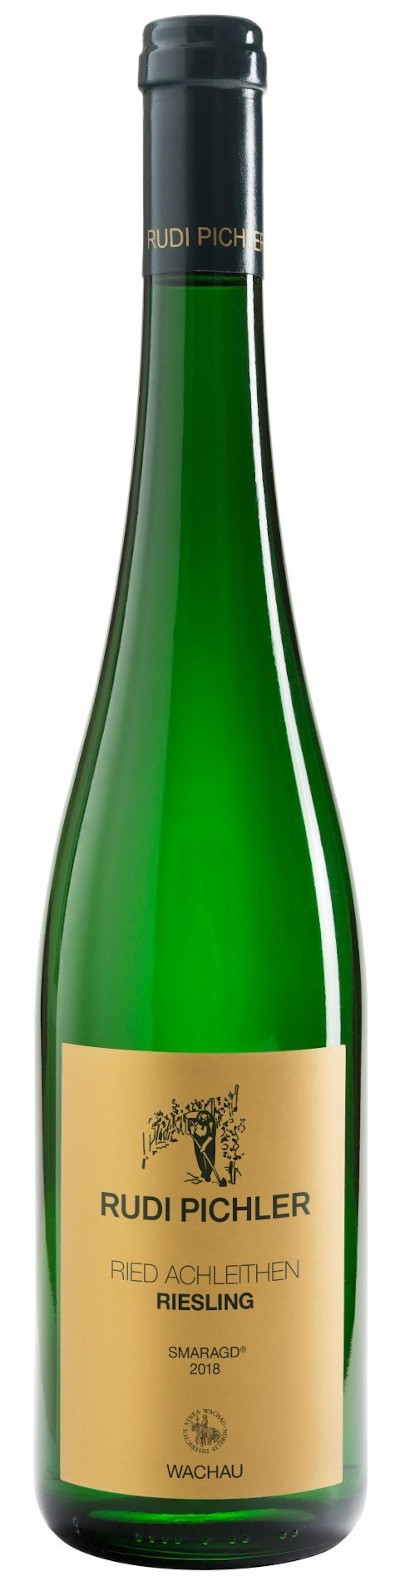 Rudi Pichler - Riesling Smaragd Ried Achleithen